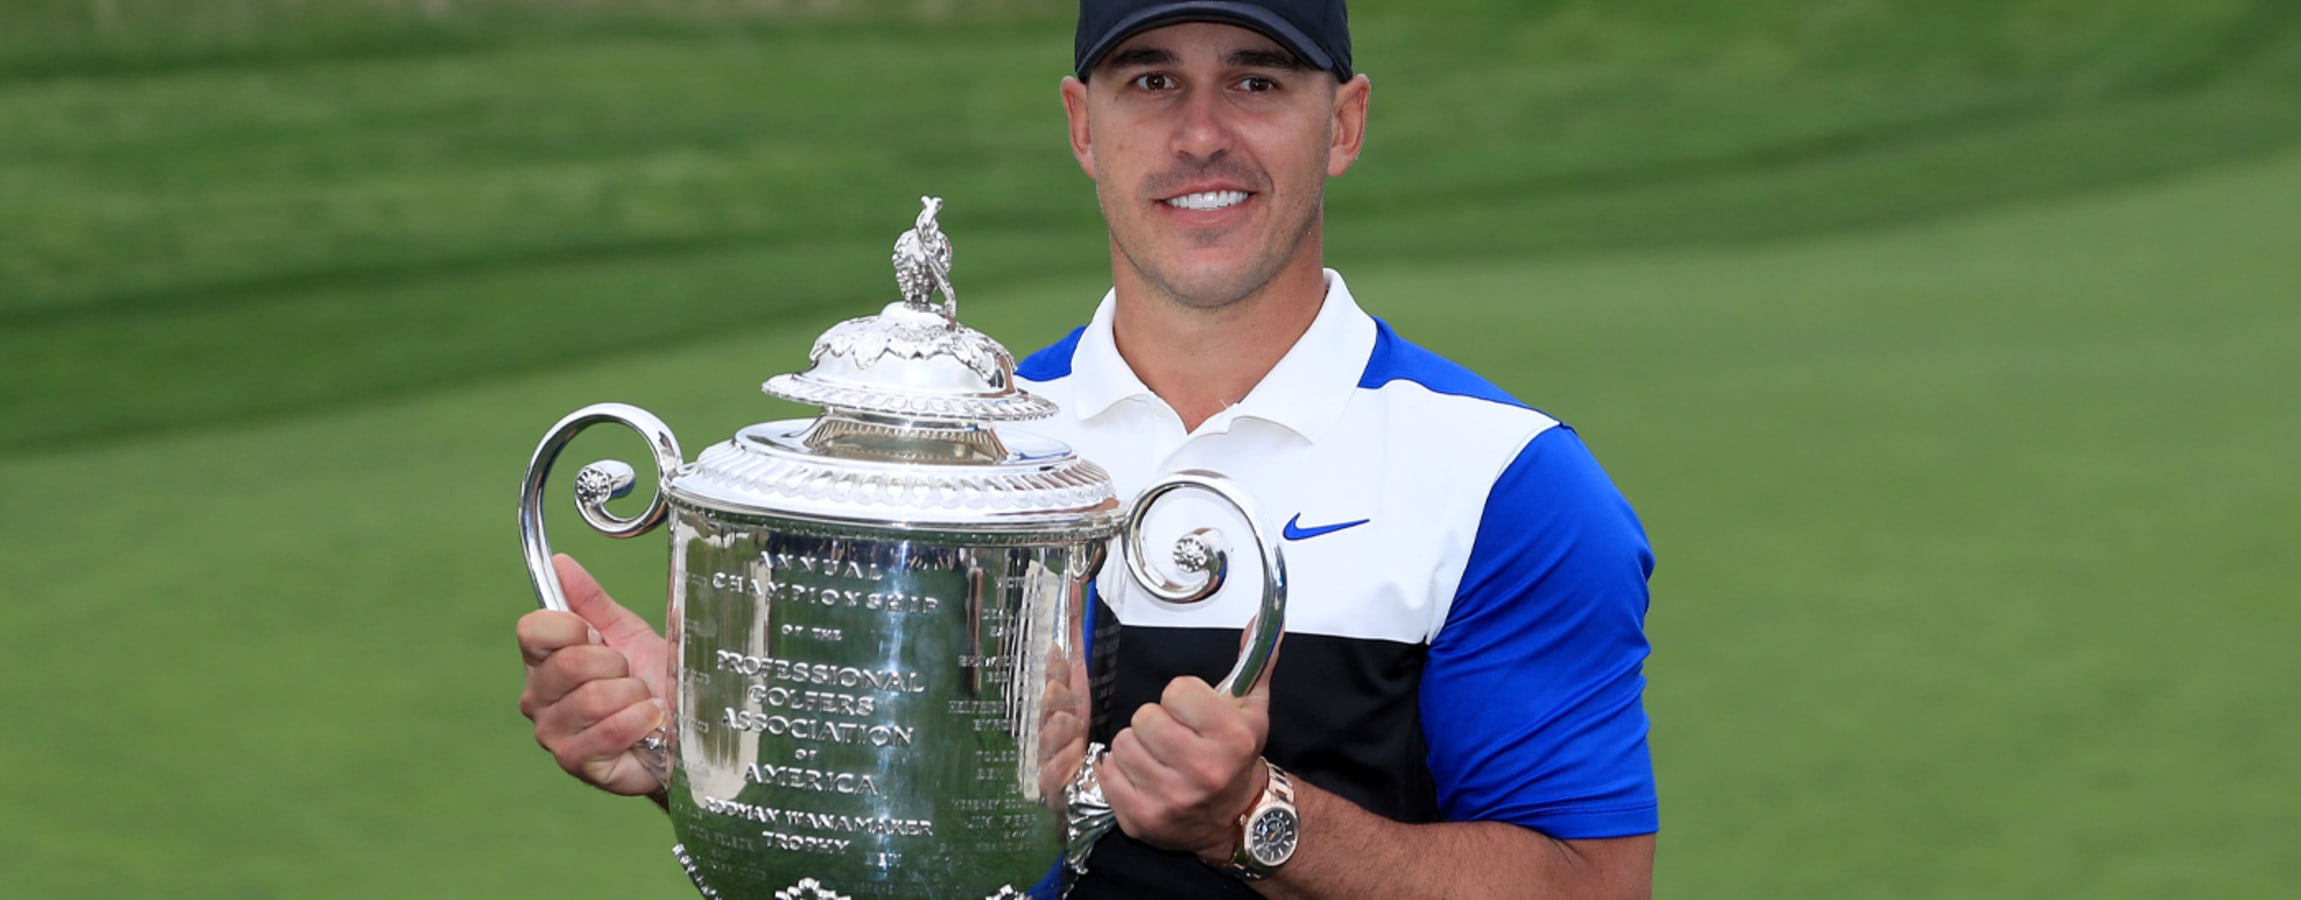 Pga Tour Players 2020 Brooks Koepka Qualifies for the 2020 Sentry Tournament of